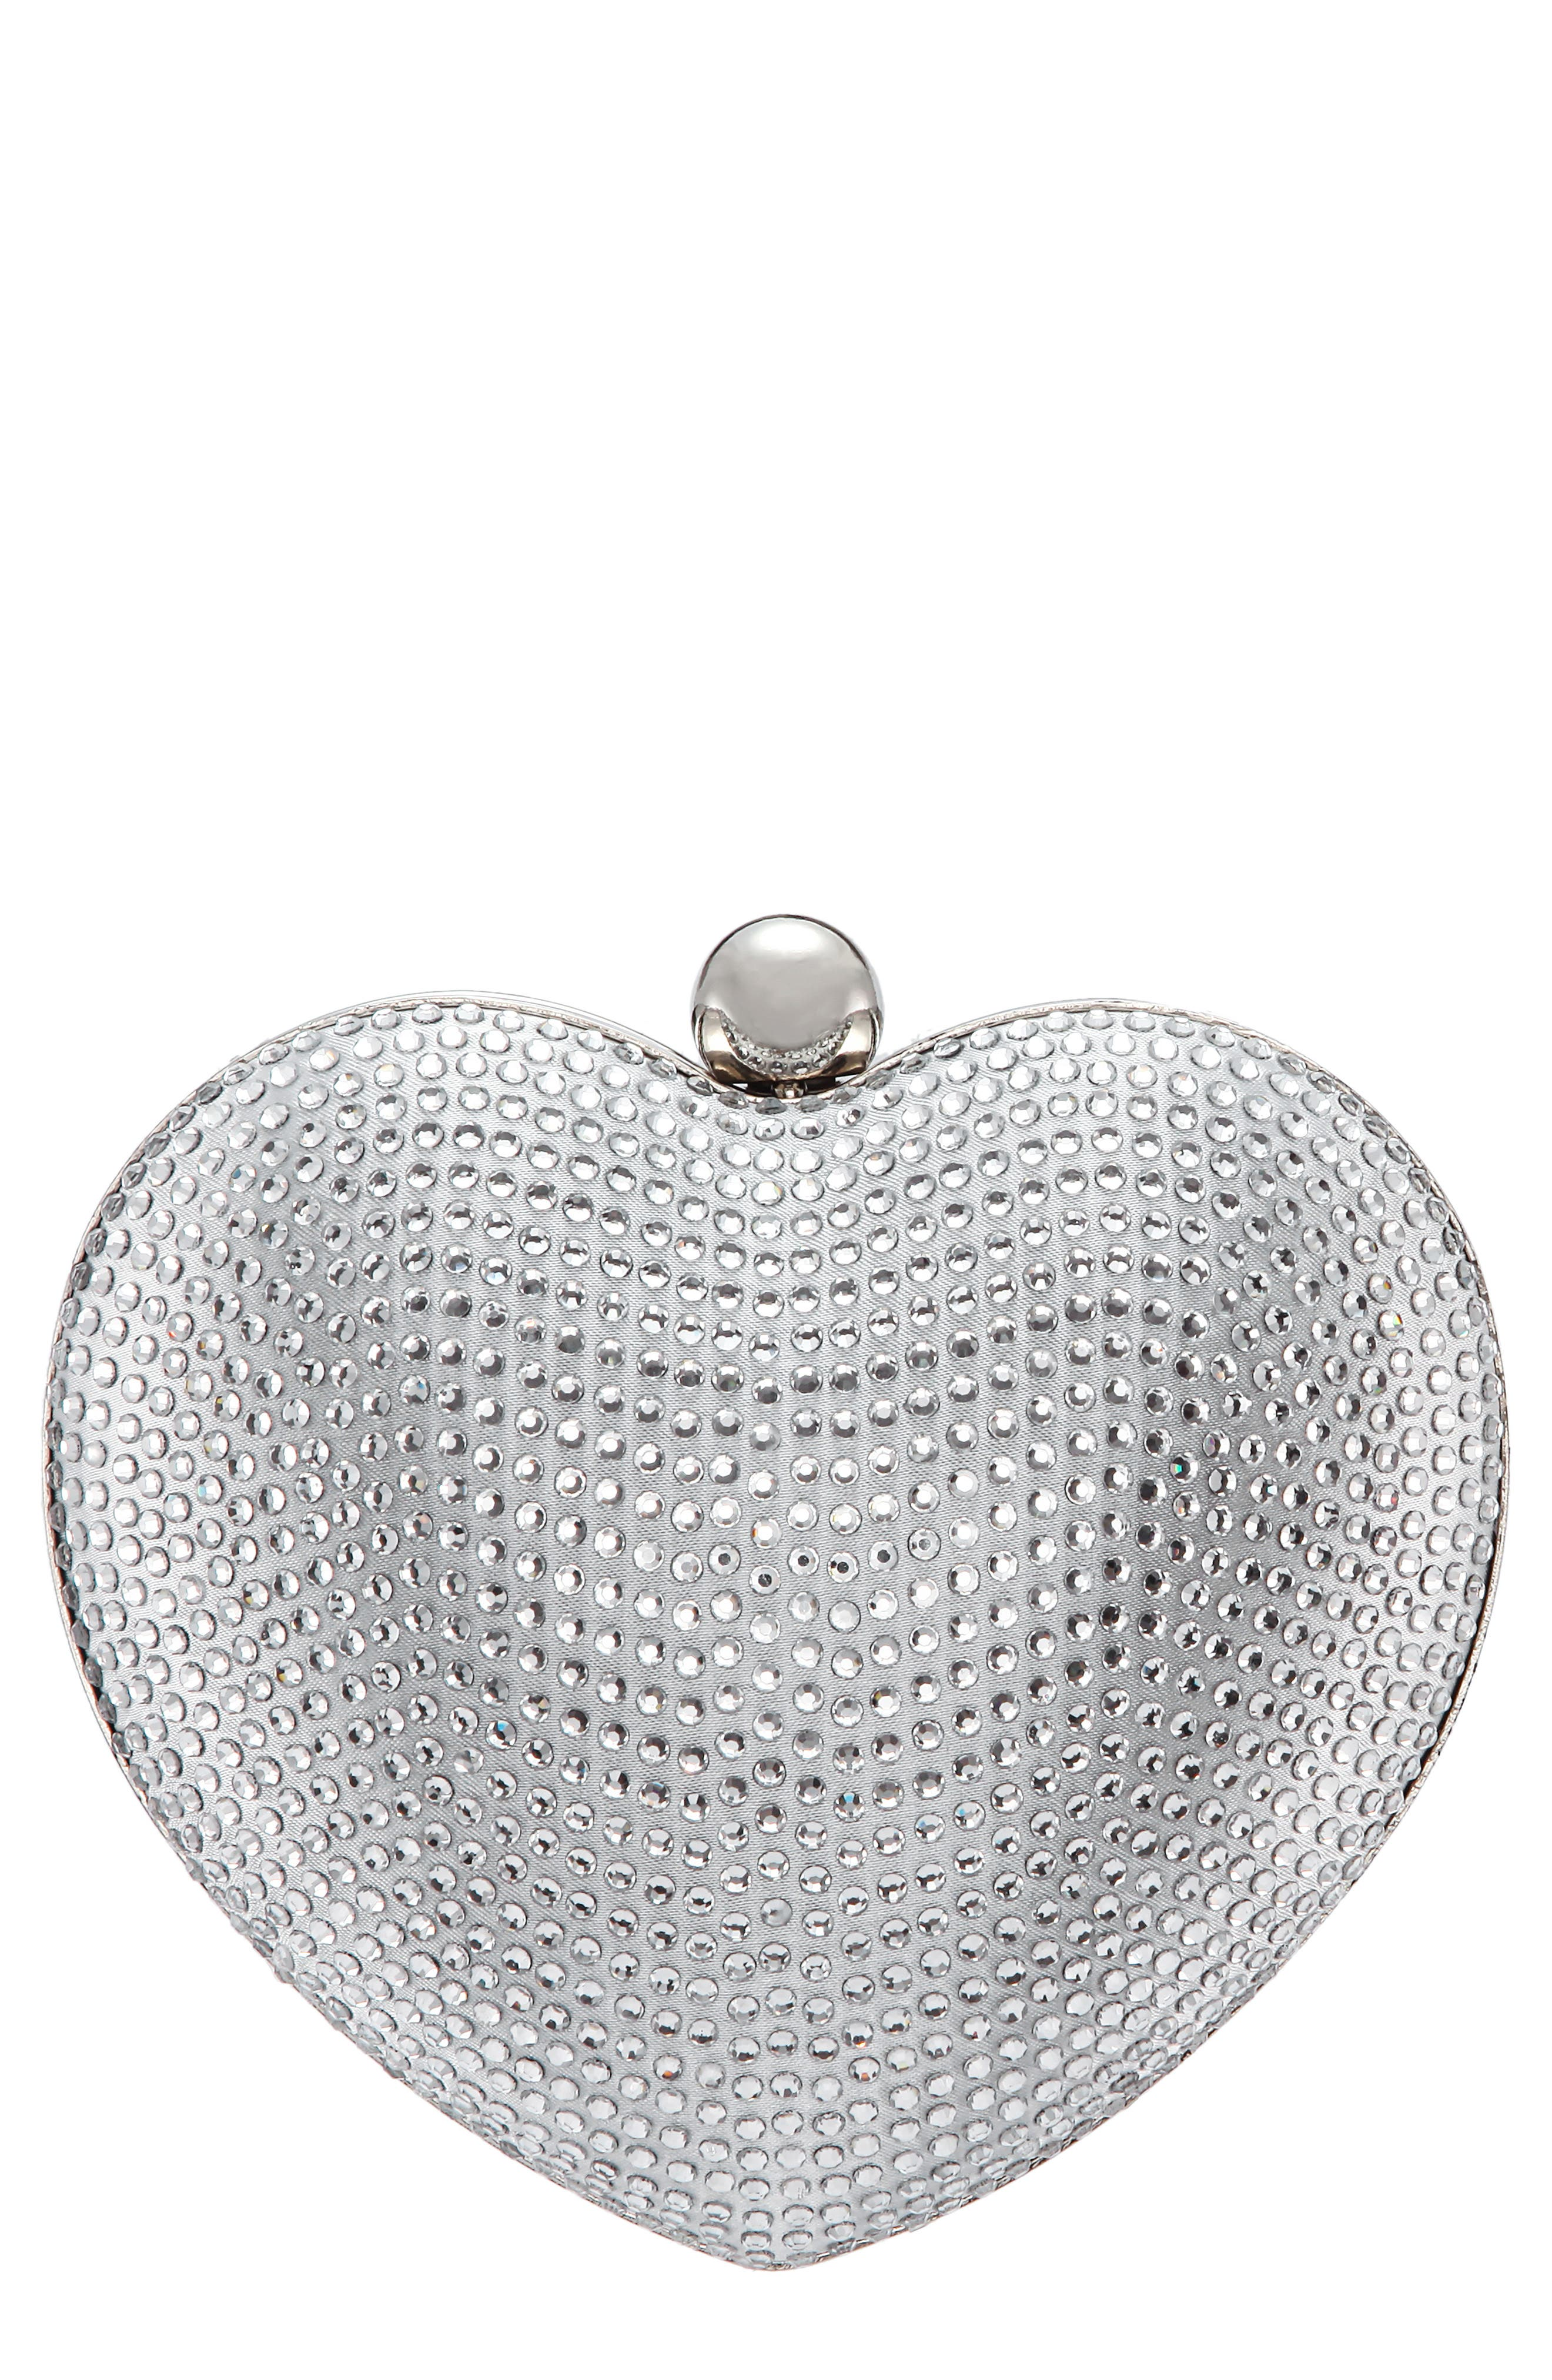 Crystal Embellished Minaudiere - Metallic in Silver